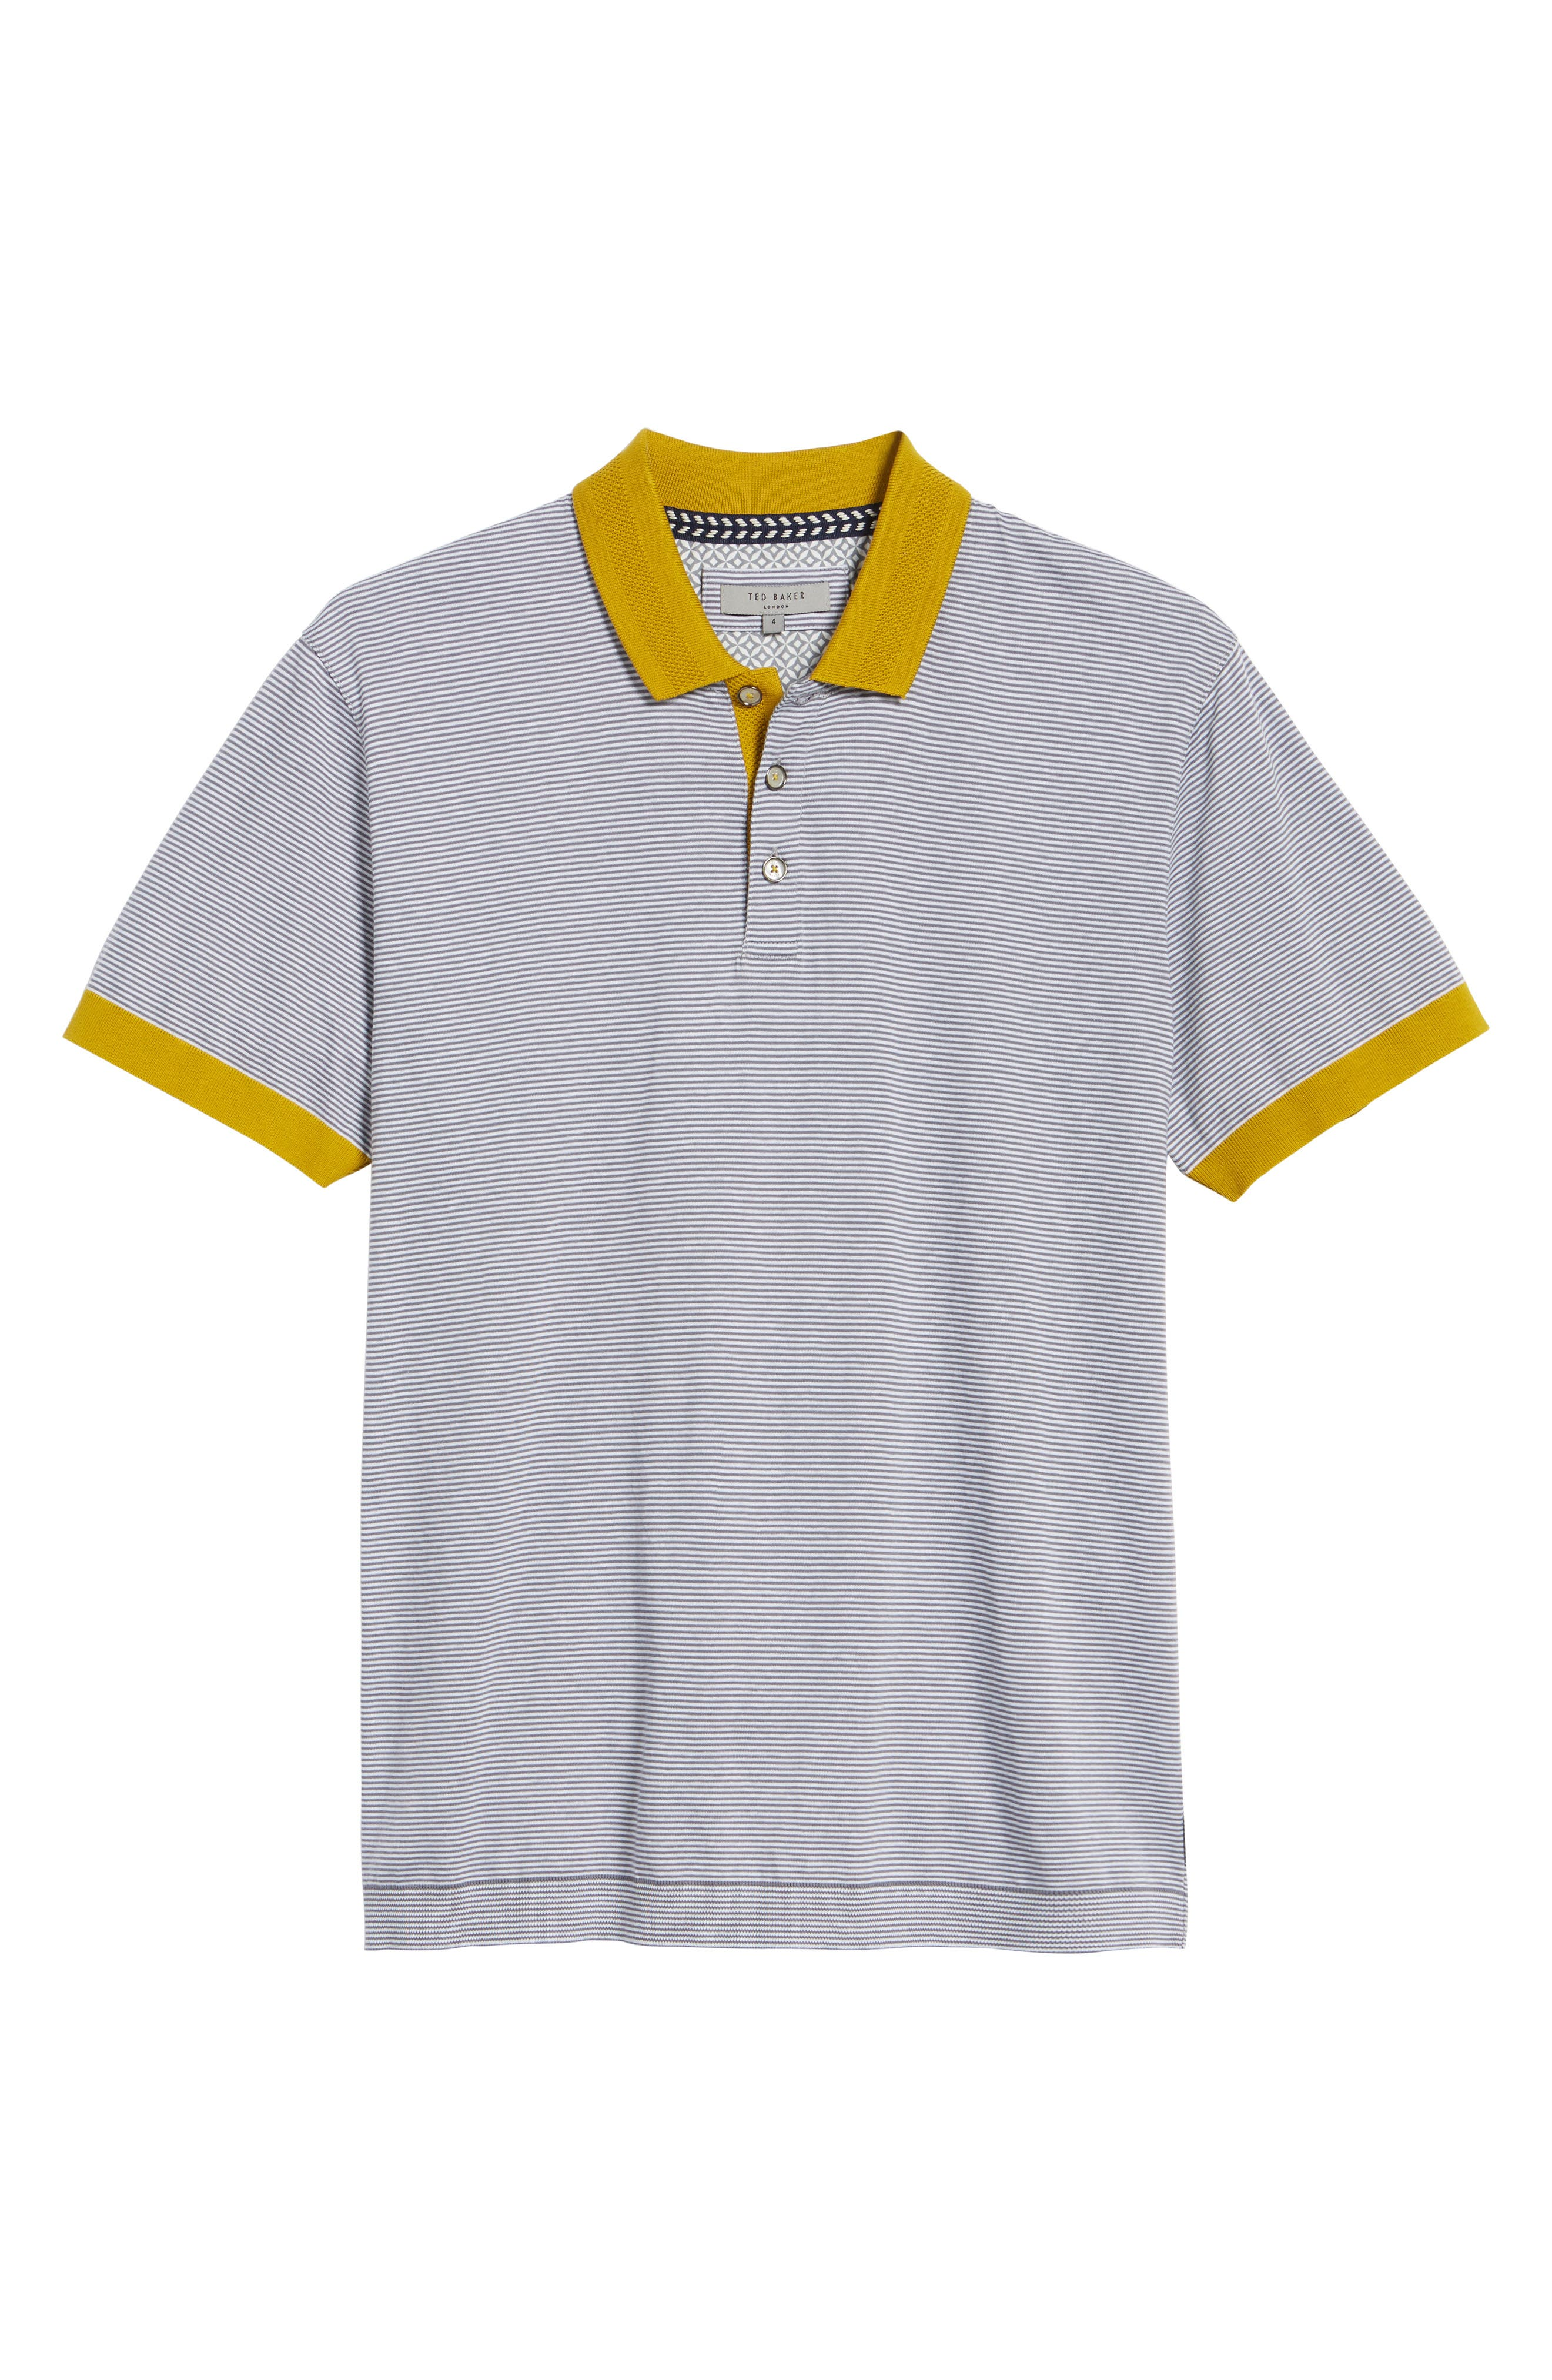 Alternate Image 6  - Ted Baker London Beagle Trim Fit Stripe Jersey Polo